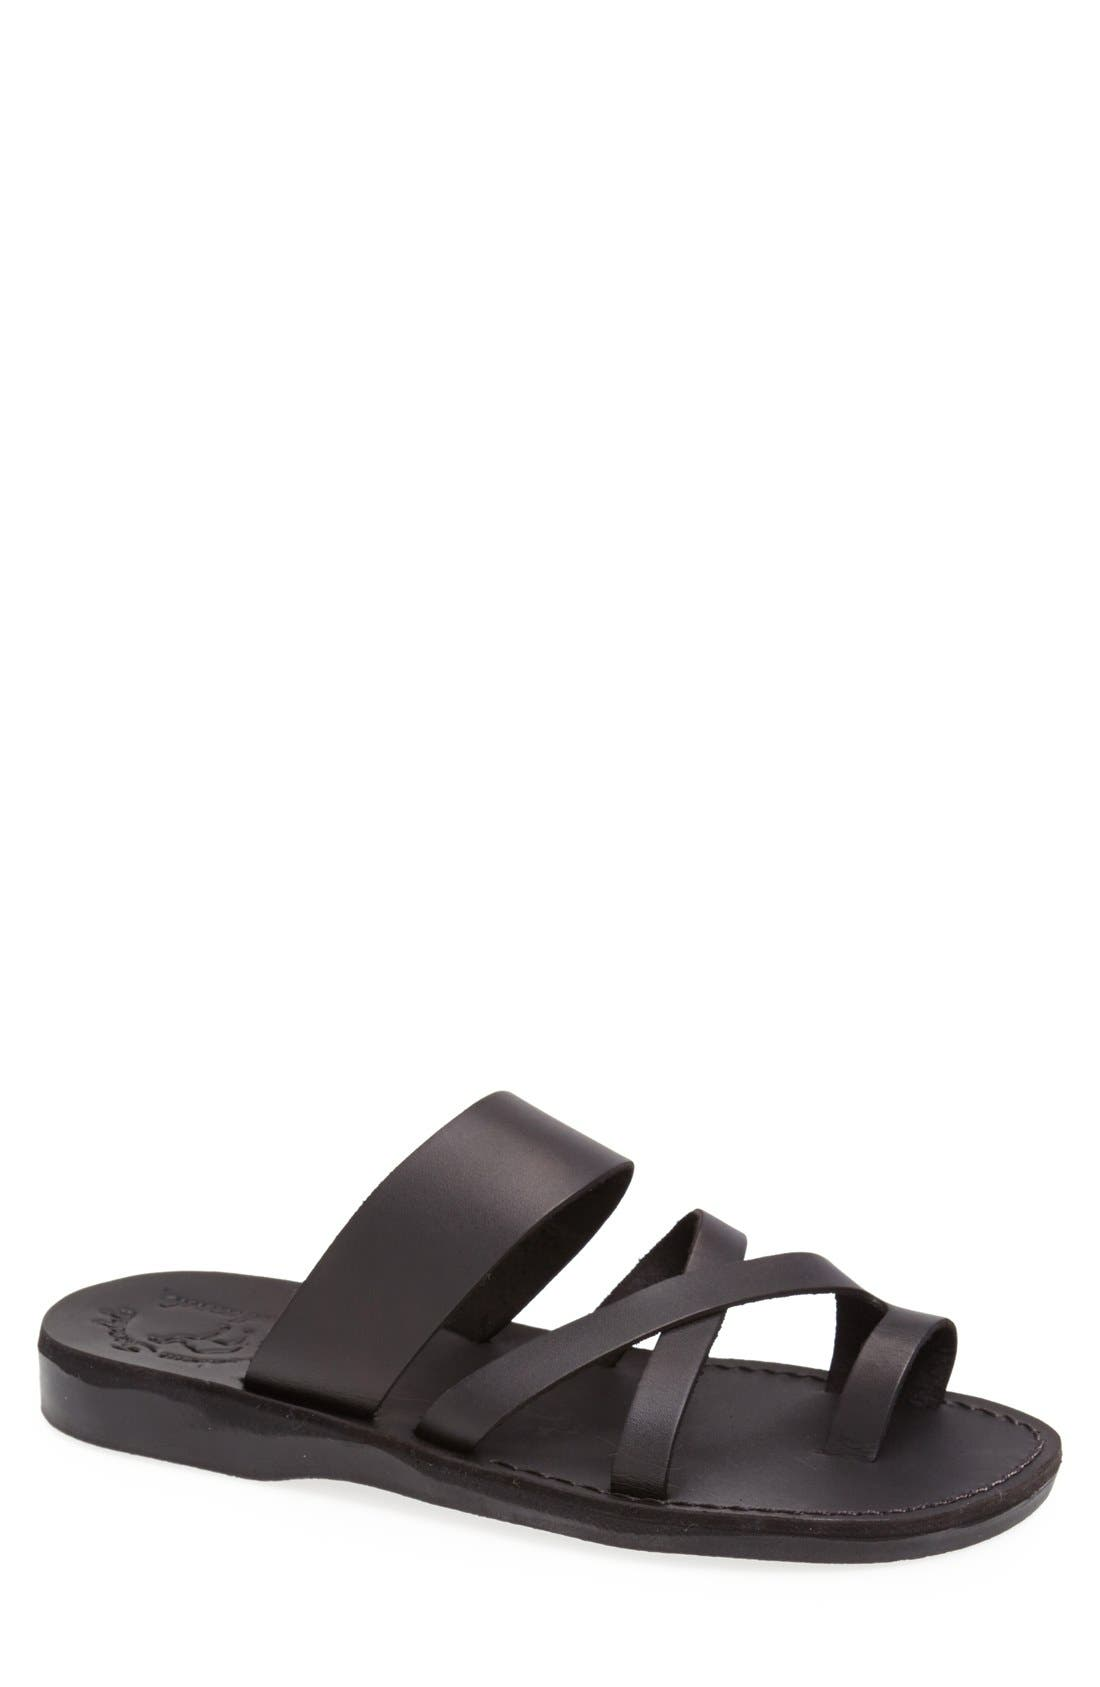 'The Good Shepherd' Leather Sandal,                         Main,                         color, 001